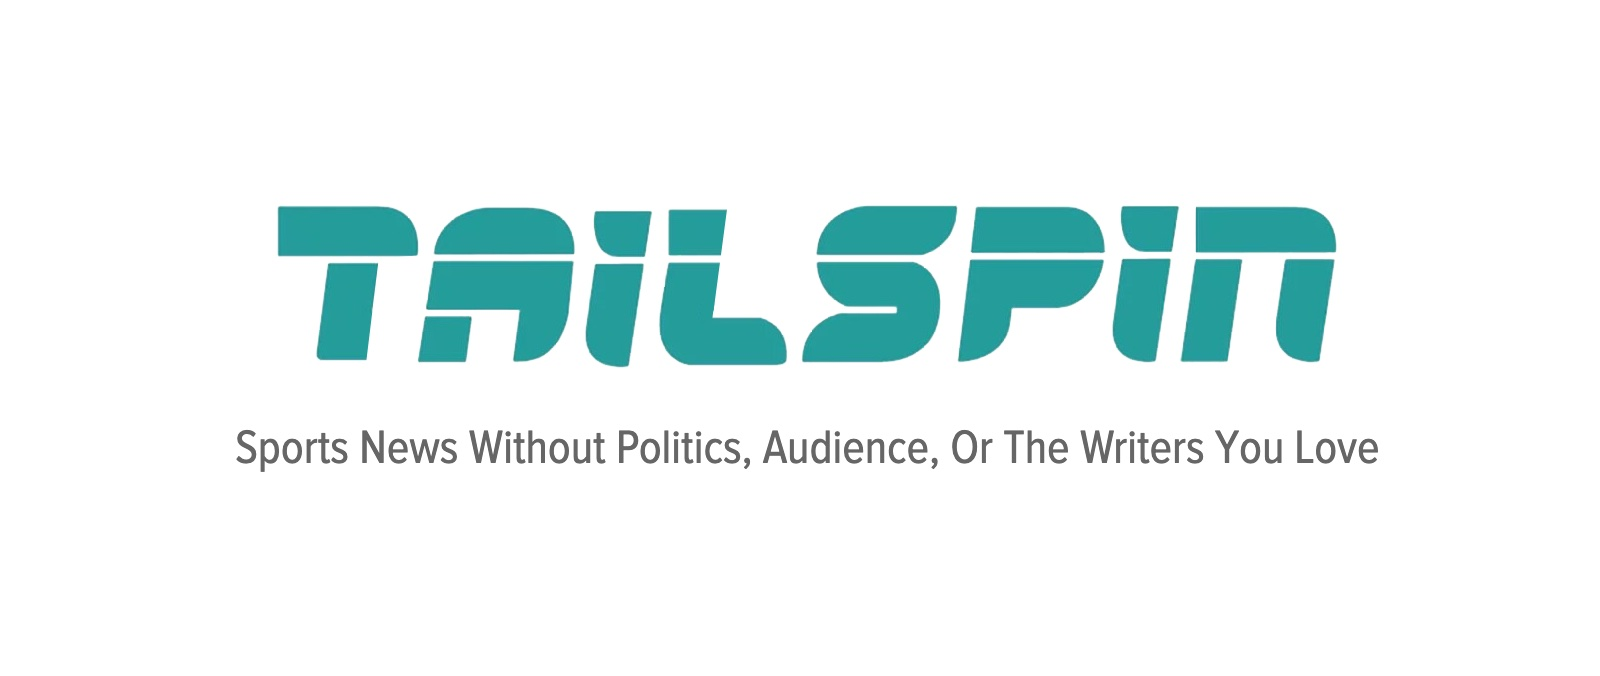 Thank you to Nieman Lab For Accurately Updating The Deadspin Logo